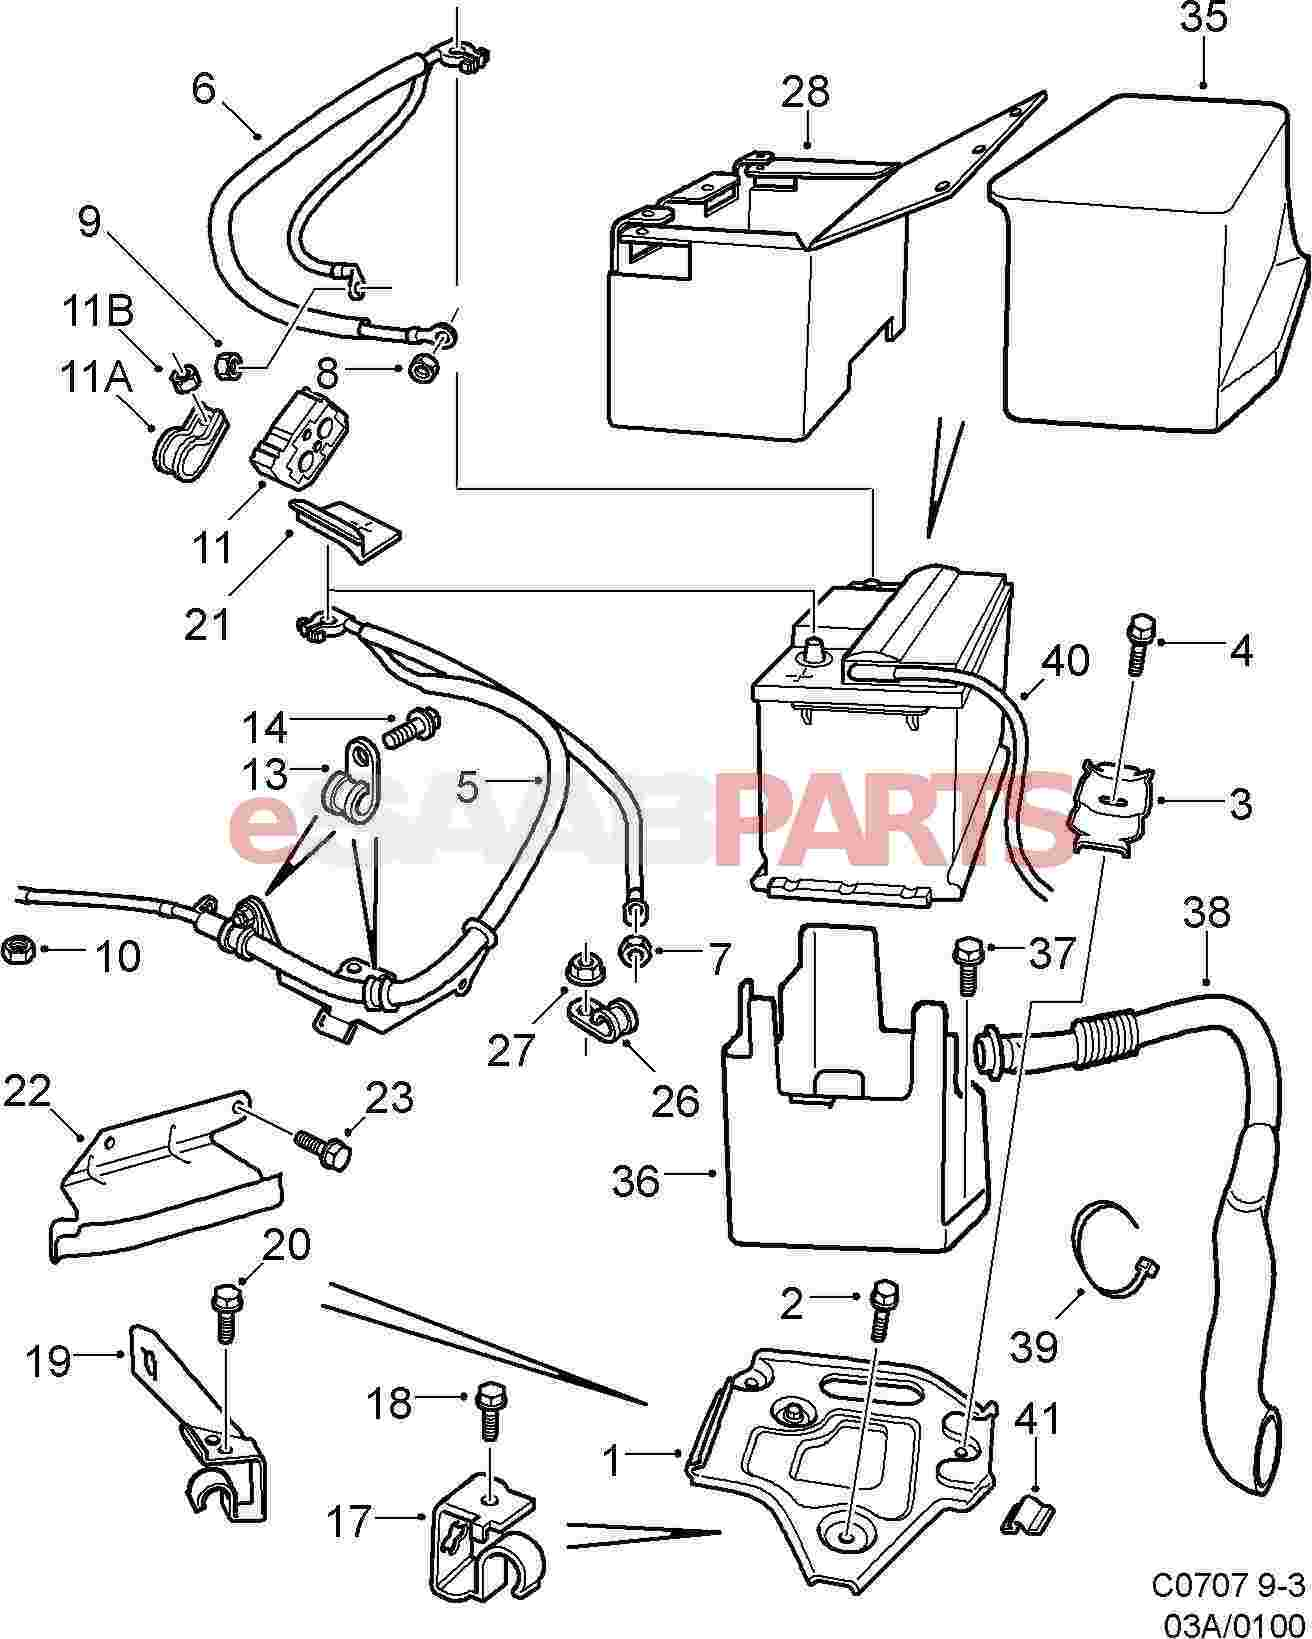 2001 Saab 9 3 Engine Diagram Just Another Wiring Blog 1999 11900513 Tie Strap Genuine Parts From Esaabparts Com Rh 20 Turbo 99 20l